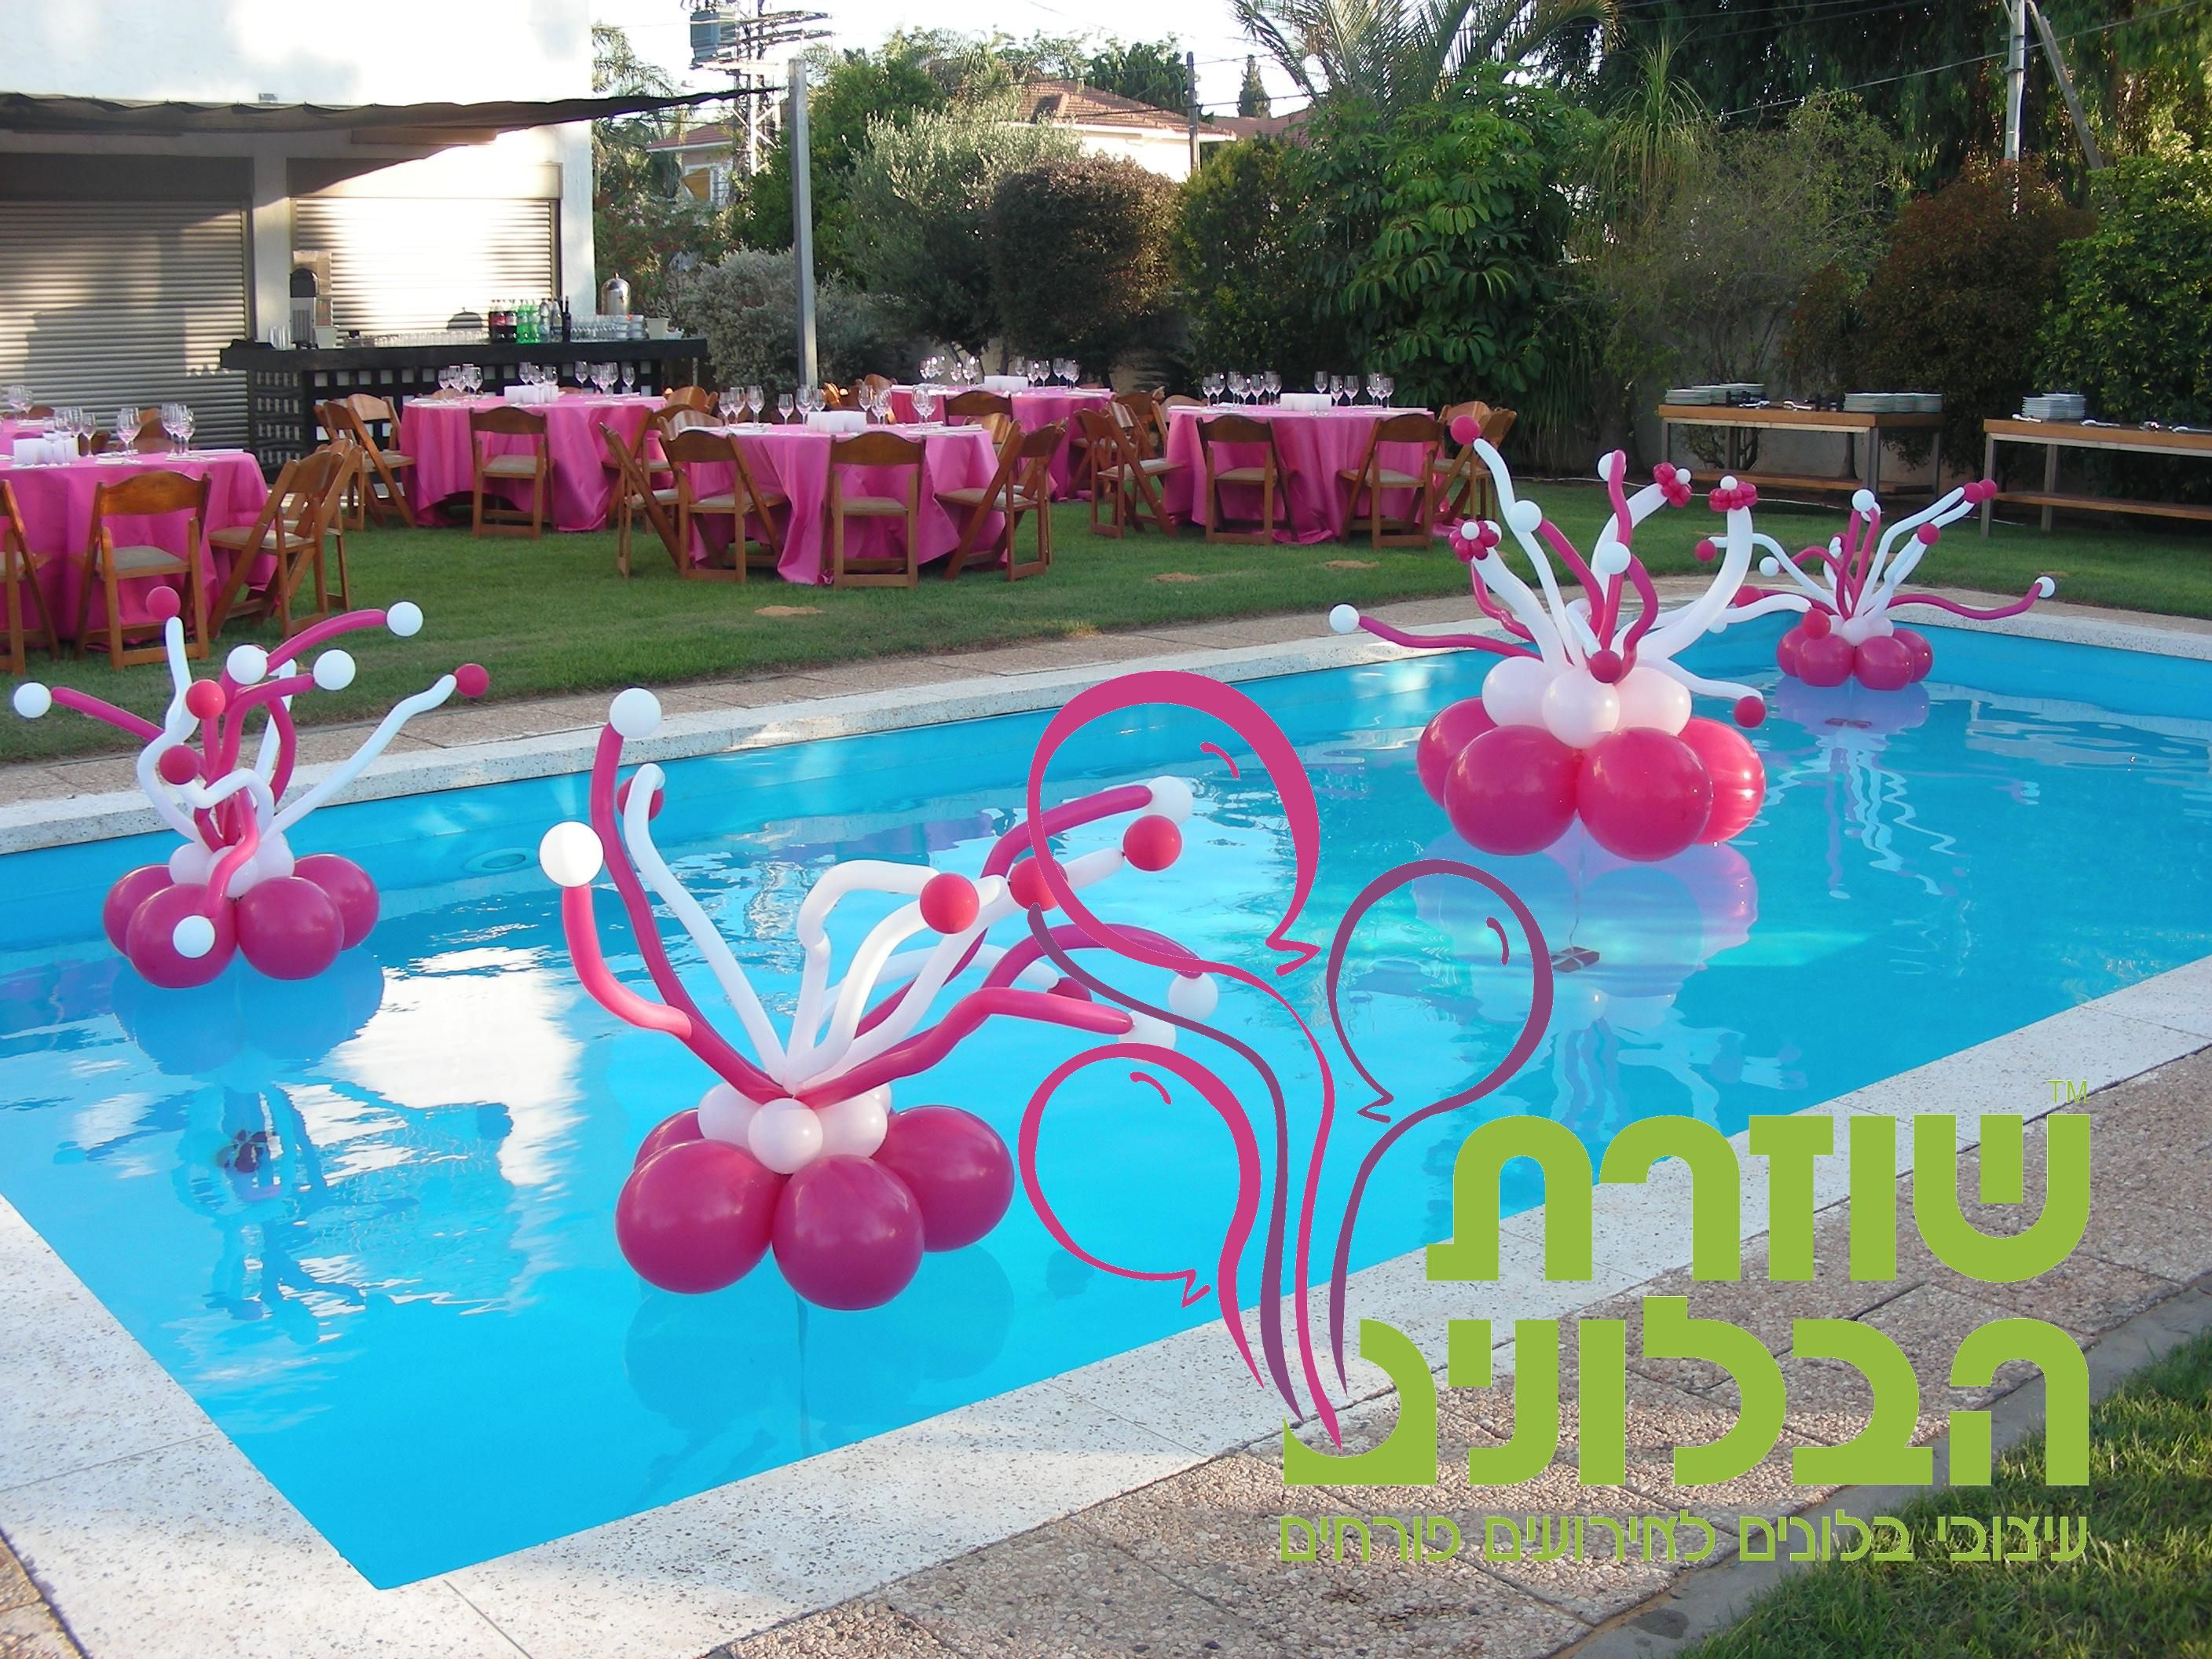 Decoraciones De Piscinas Pin De Clary En Balloon In Pool Pinterest Balloons